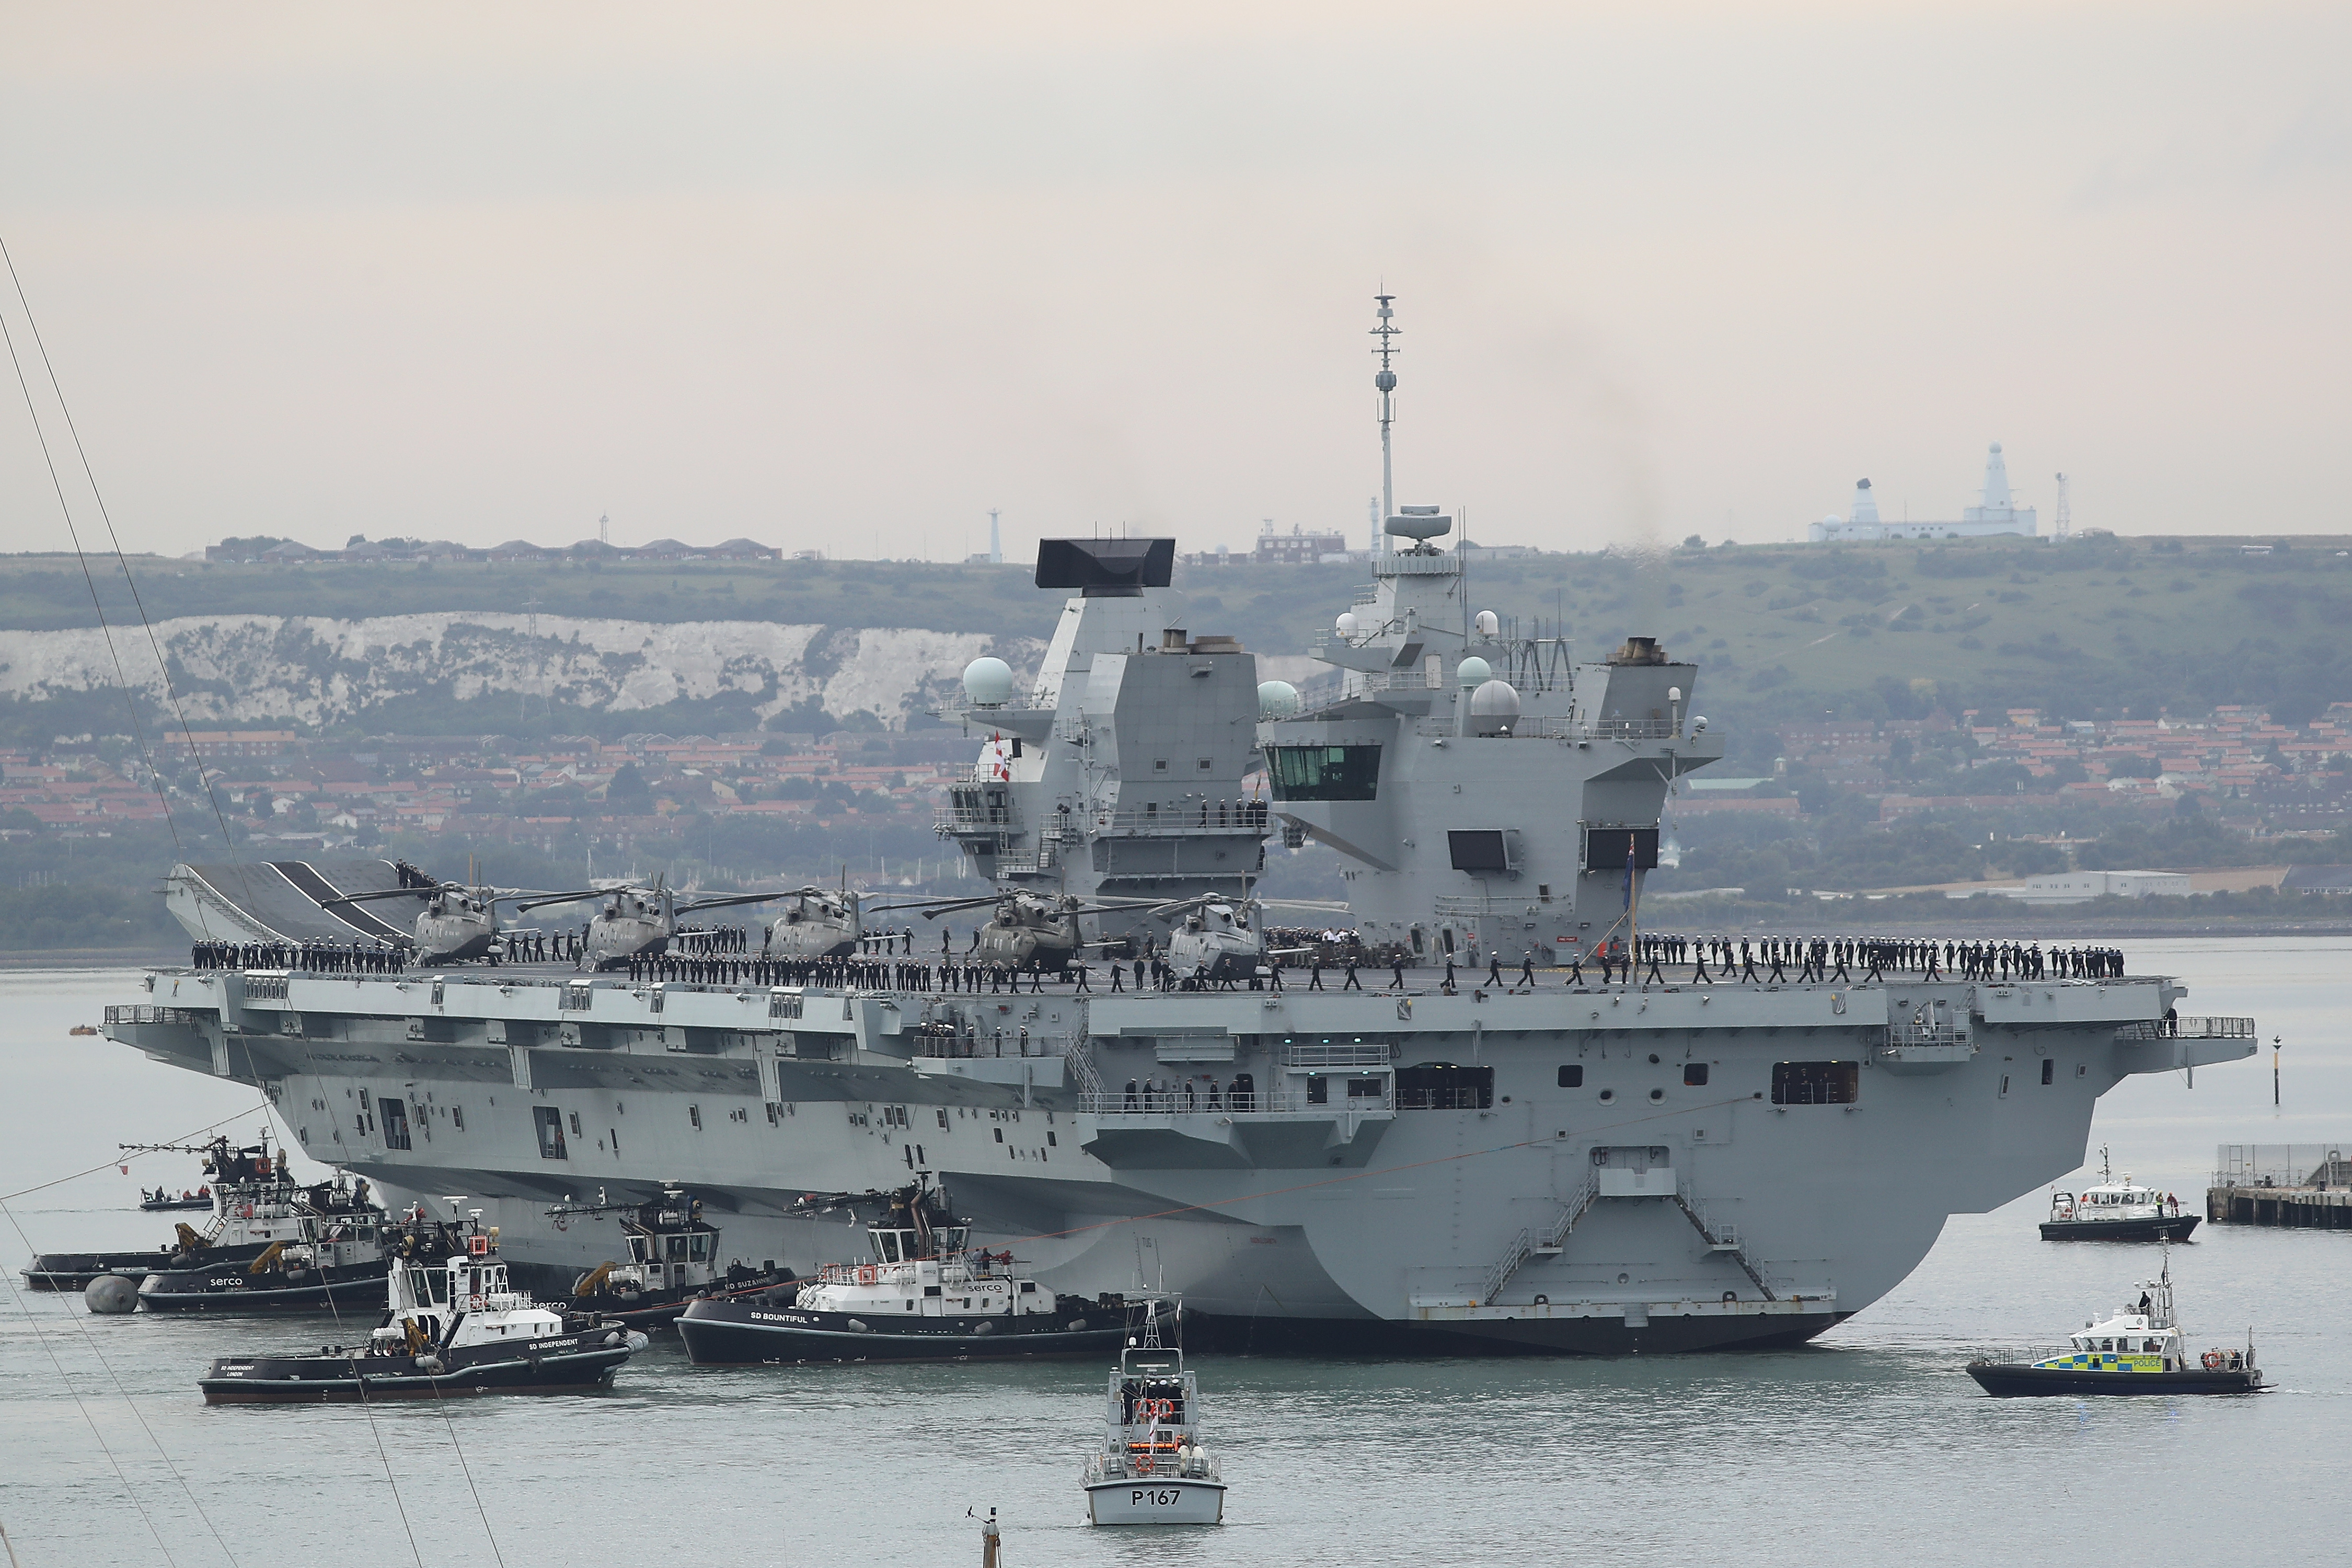 HMS Queen Elizabeth scheduled for repairs after leak found on aircraft carrier - YBW